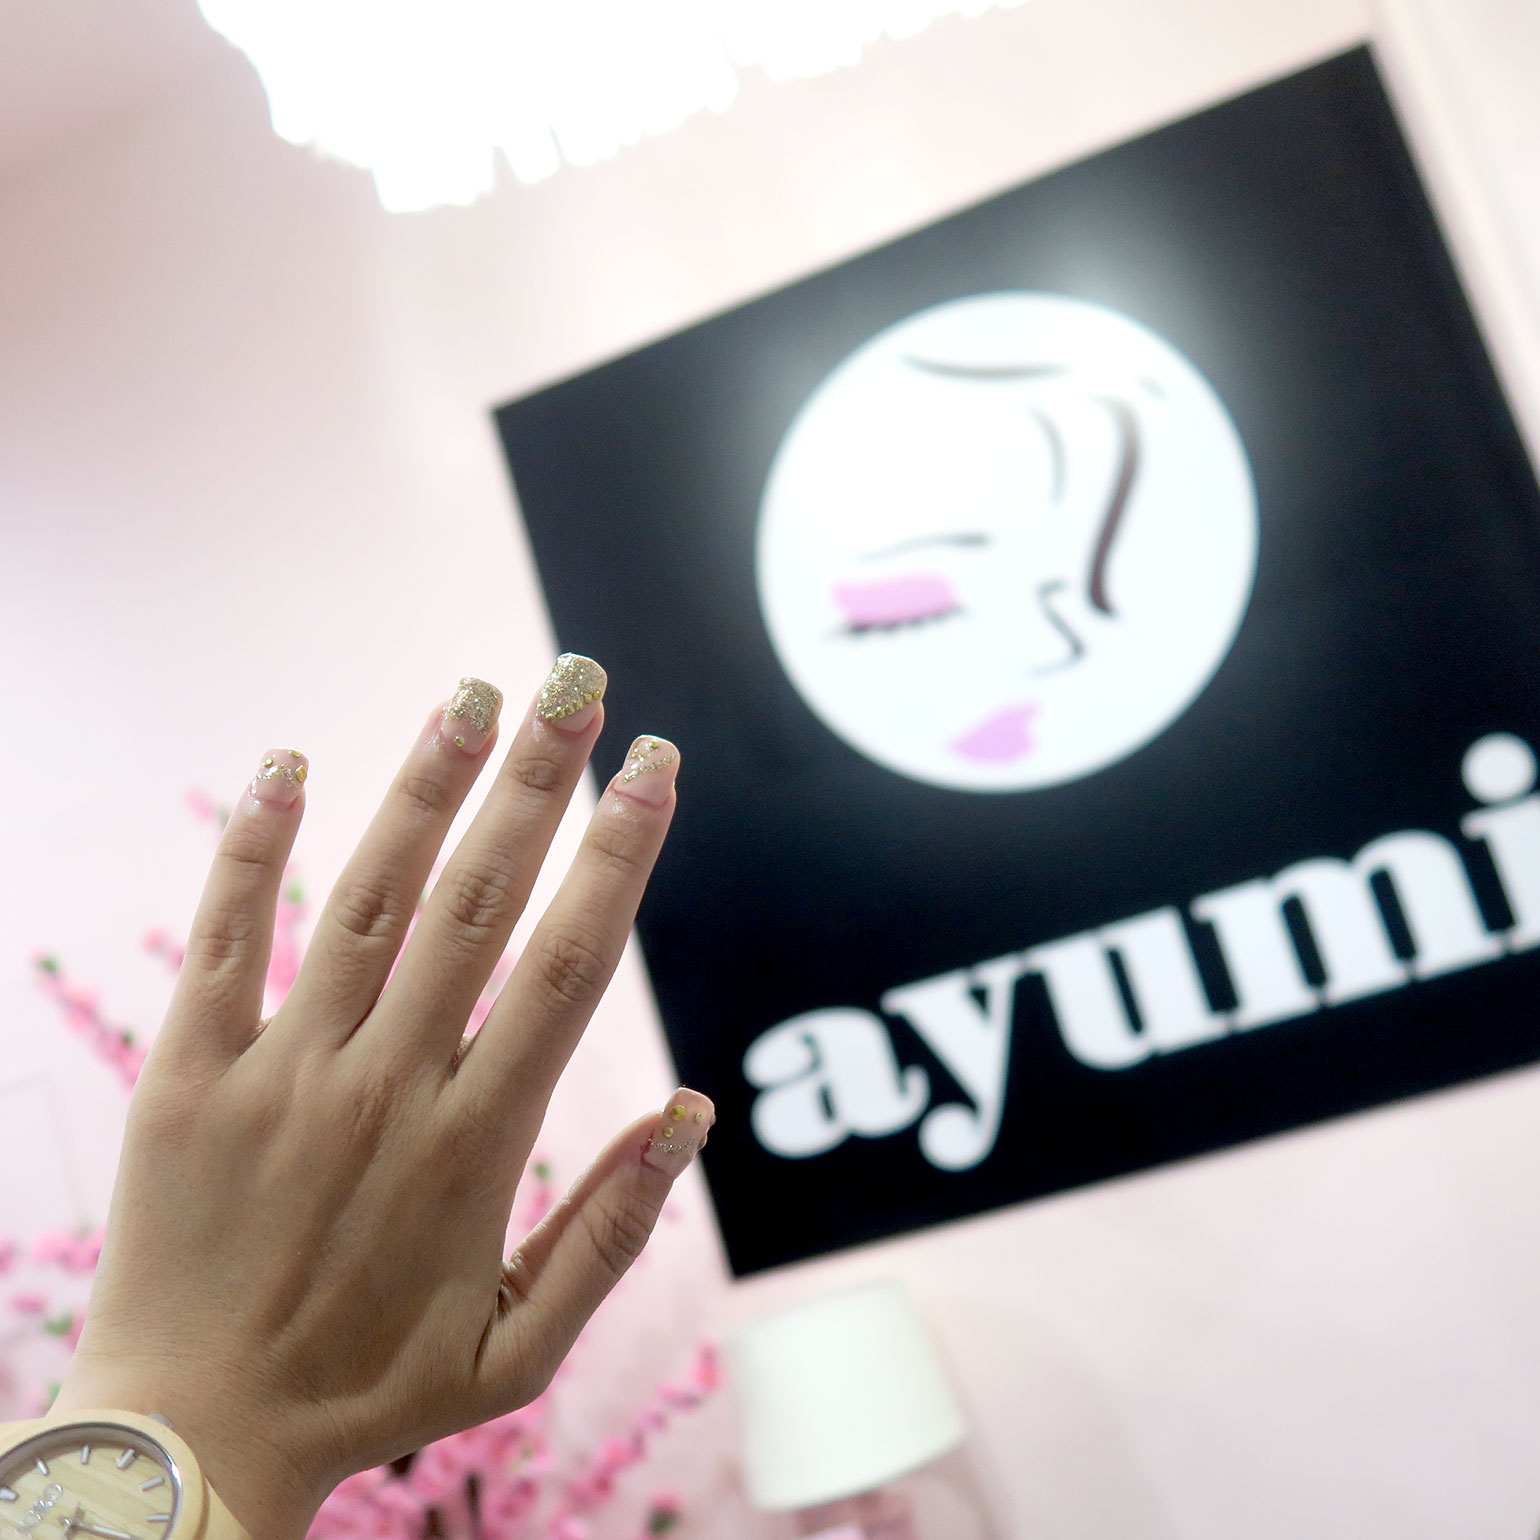 15 Acrylic Nails Review - Nail Art - Ayumi Las Piñas - Gen-zel.com(c)